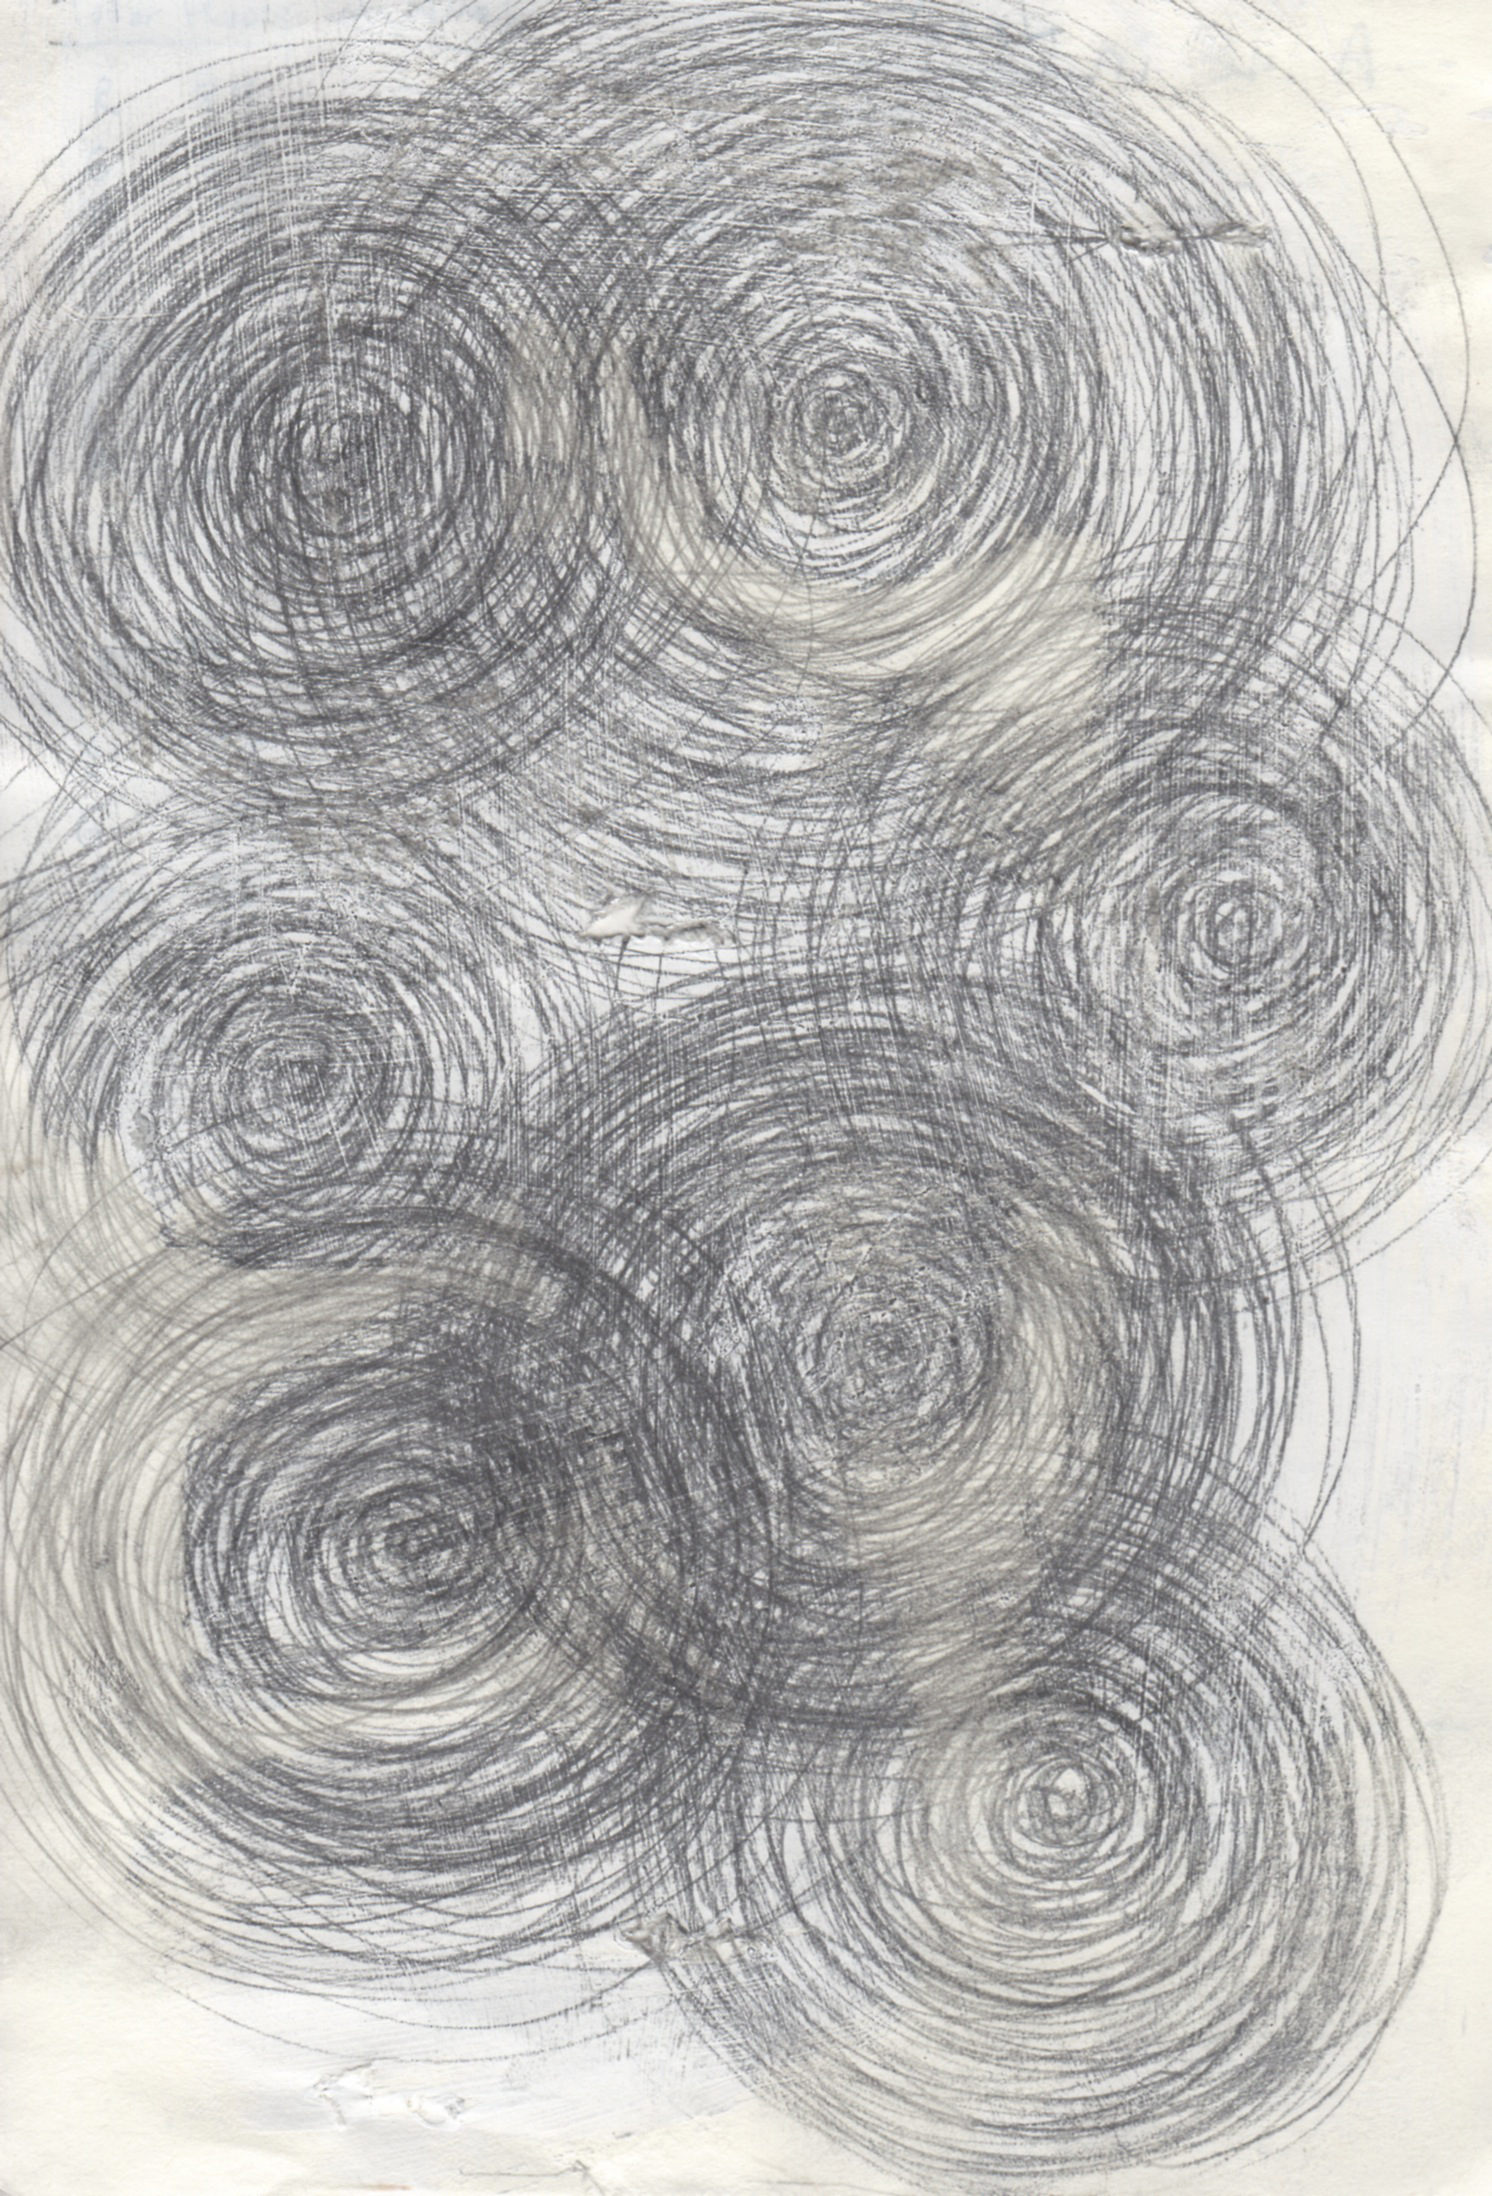 untitled 10,  2010  graphite on paper, 7 x 5 in